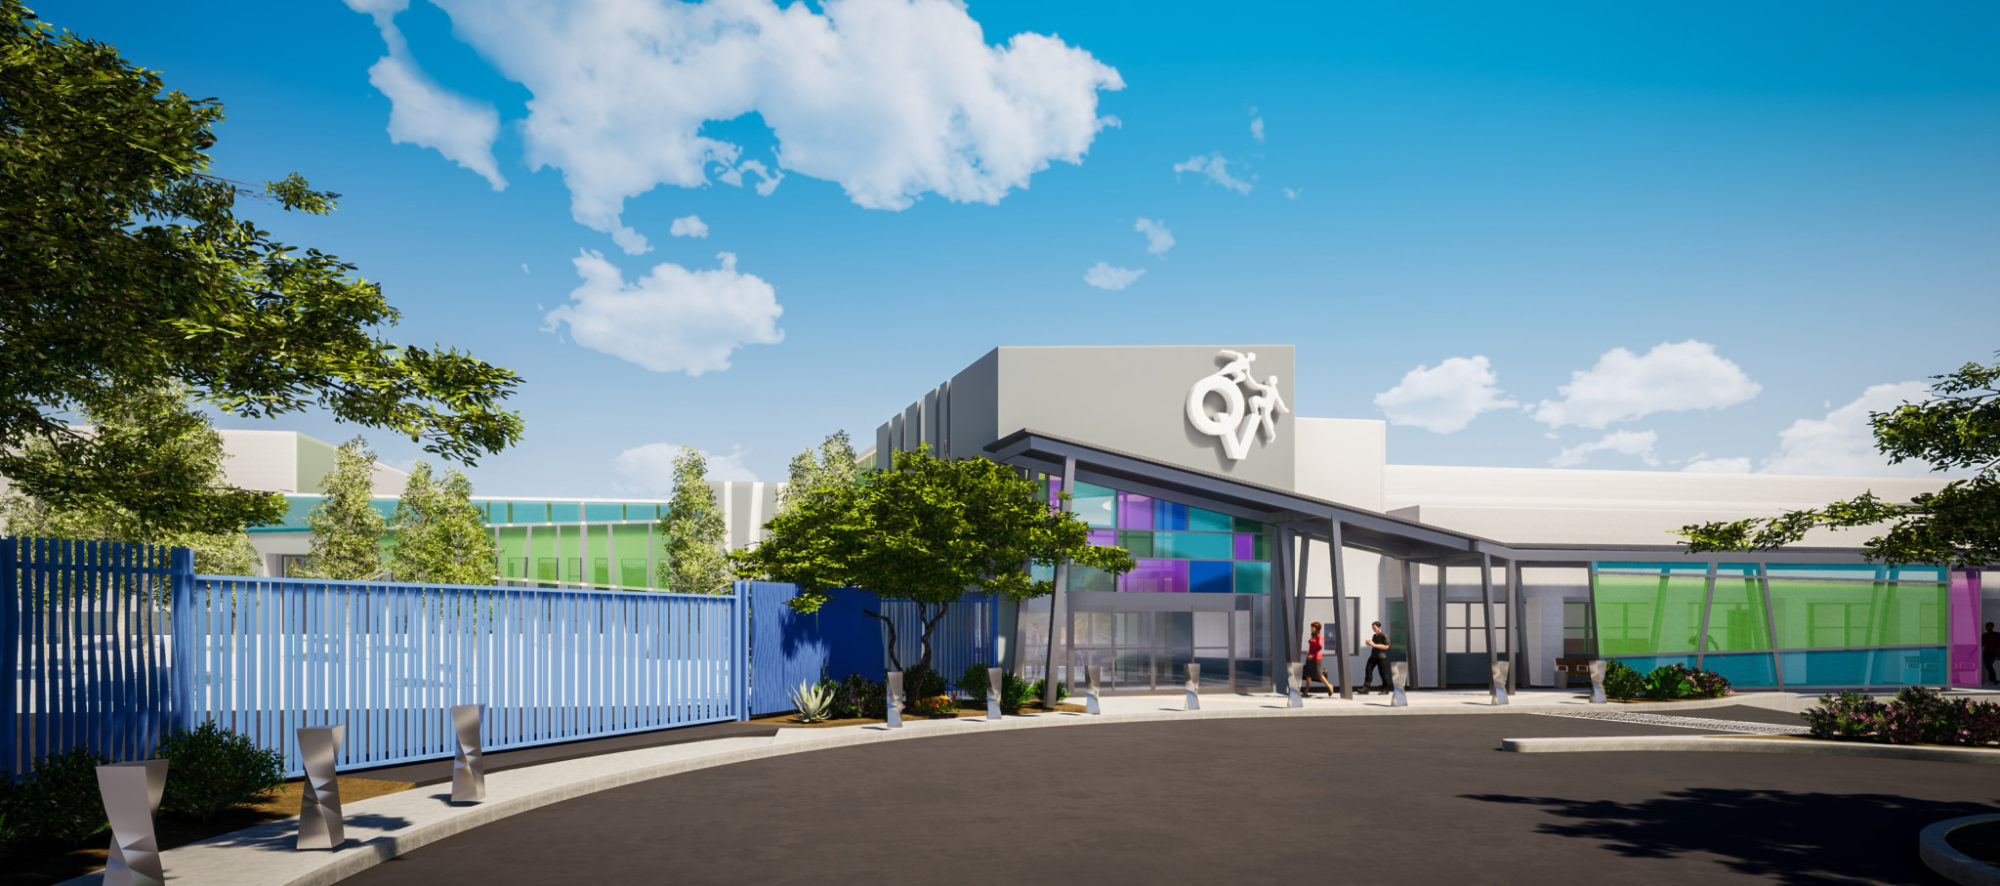 The rendering of the entrance to the Opportunity Village Oakey Campus,designed by LGA Architecture.